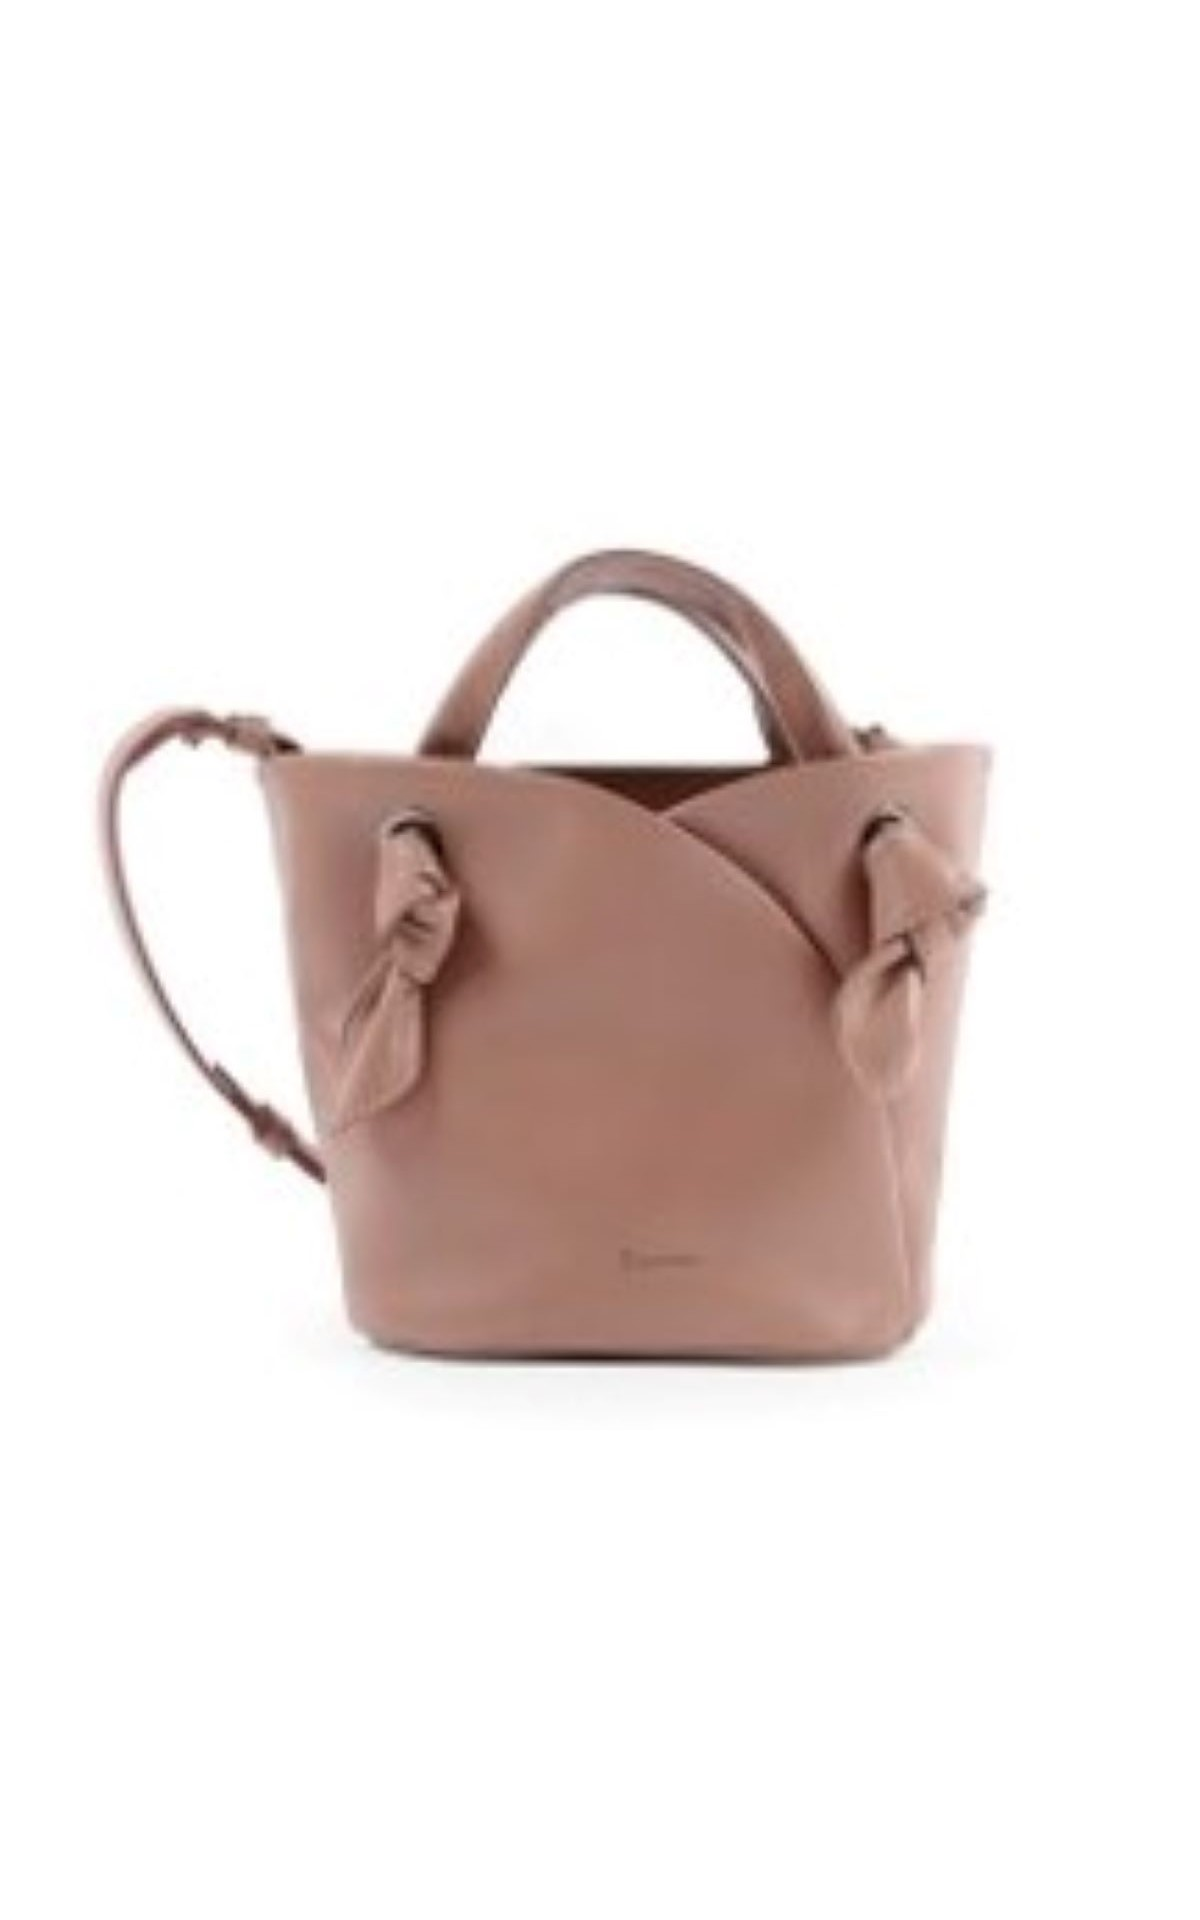 La Vallée Village Repetto Révérence Rose Romance small bag